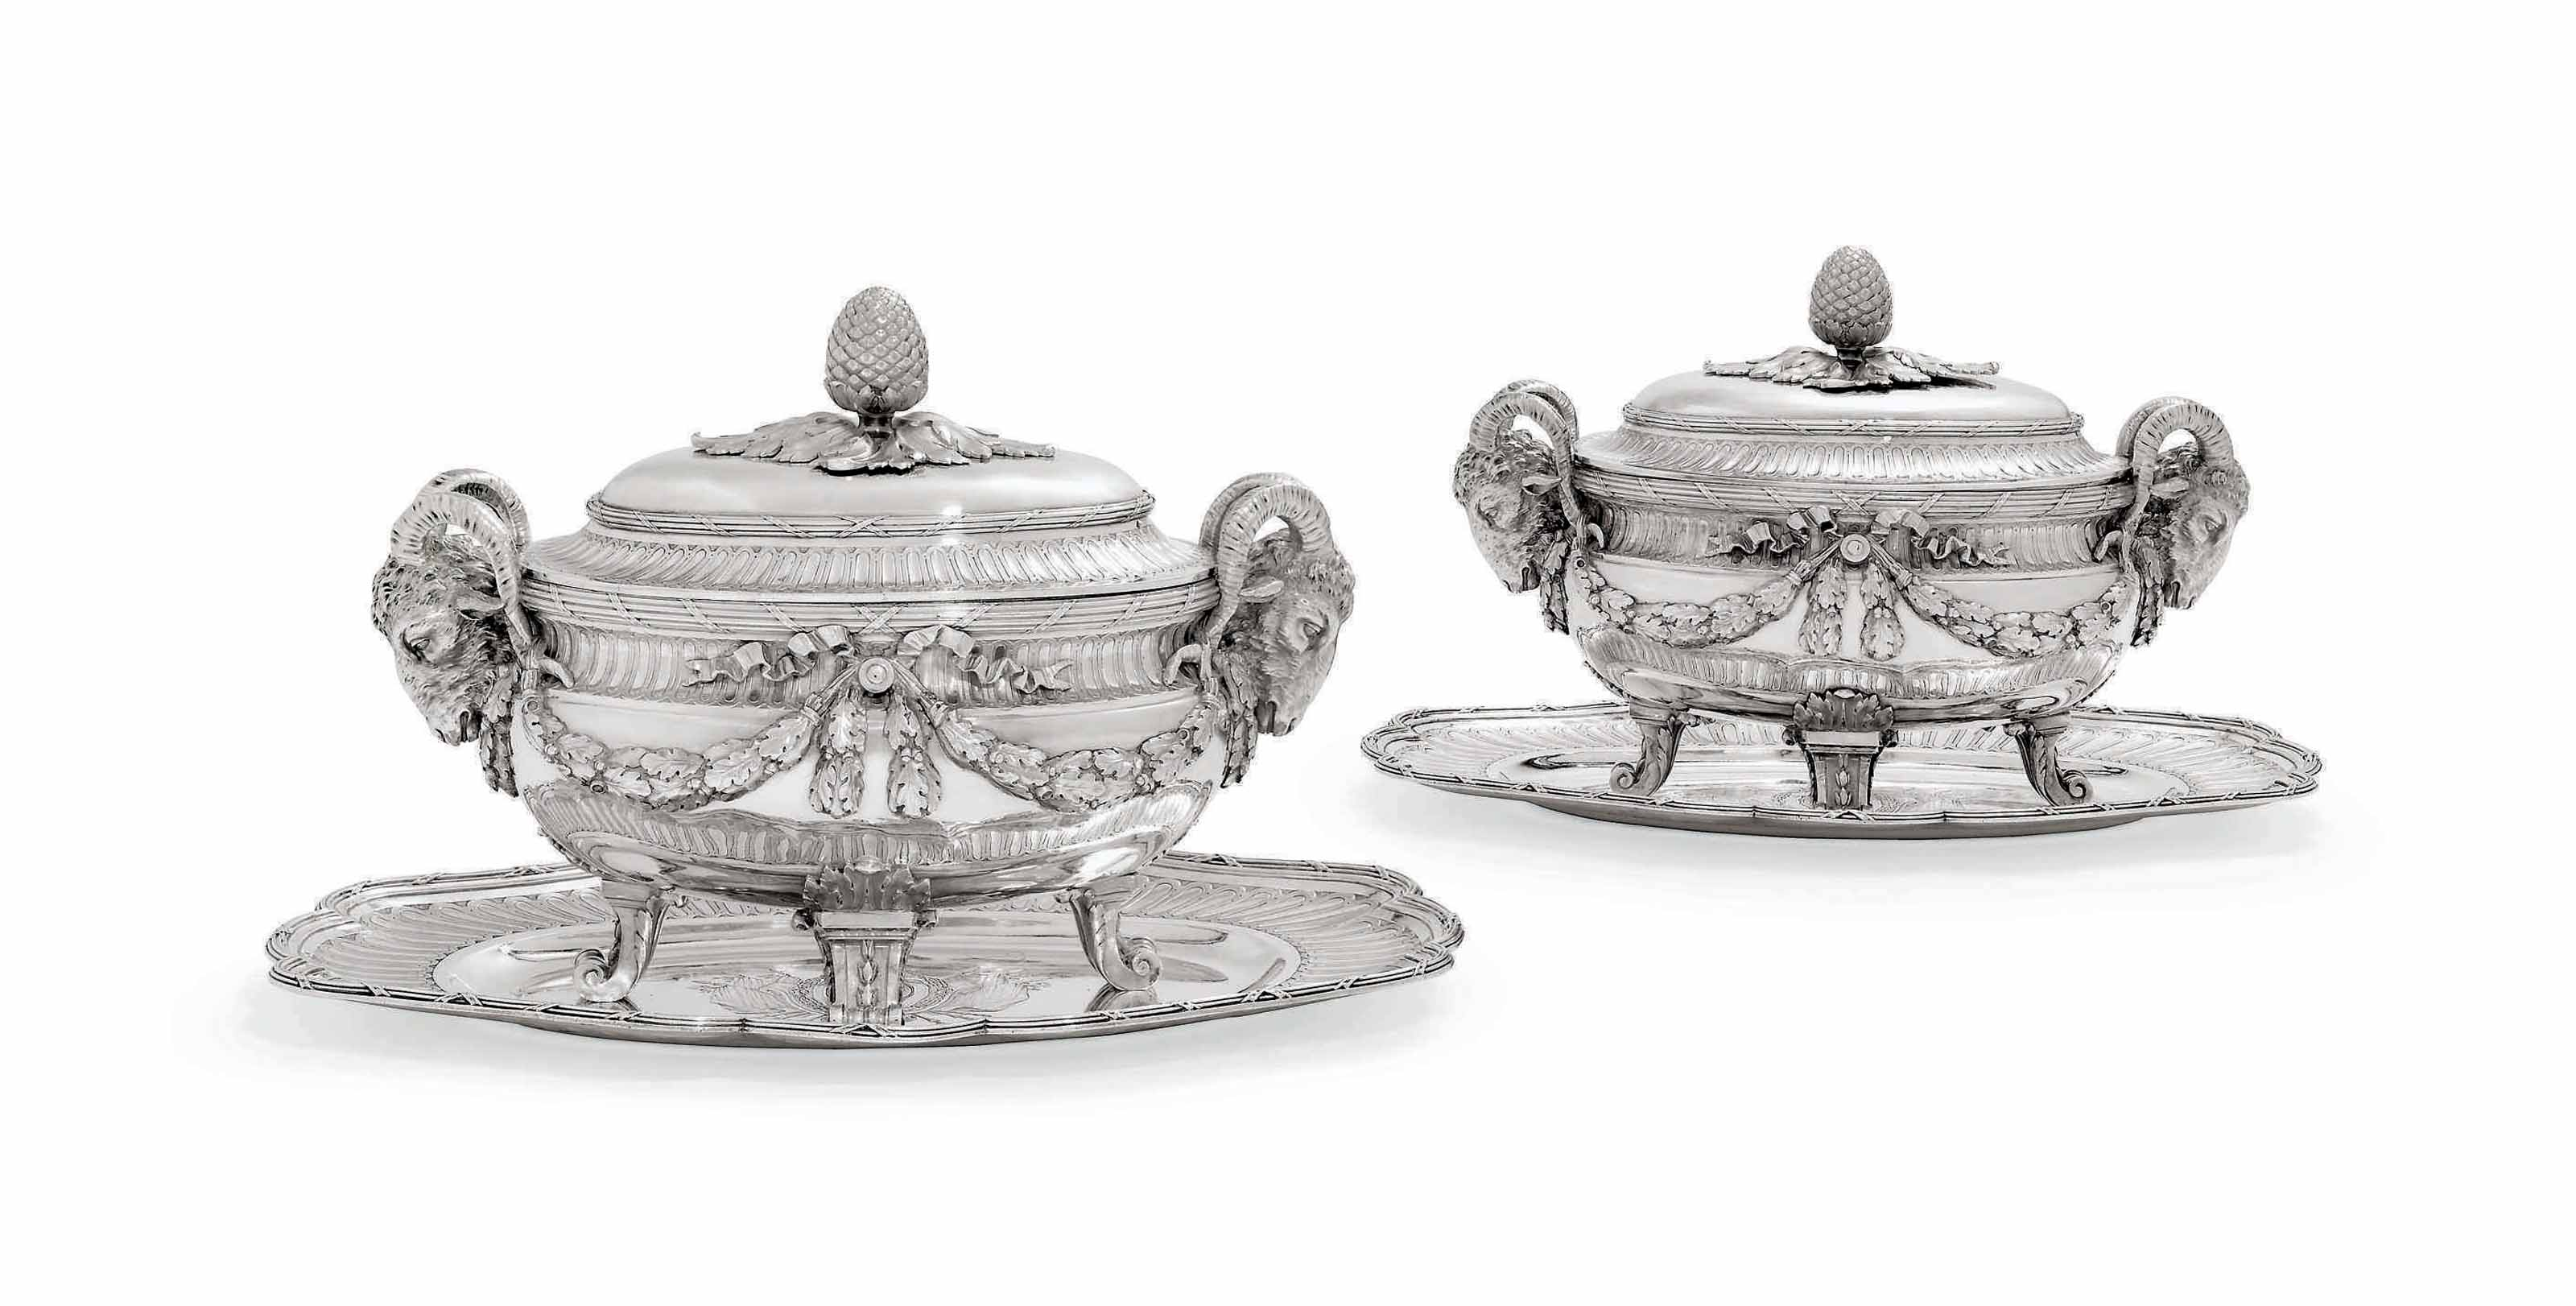 A PAIR OF LATE LOUIS XV SILVER SOUP-TUREENS, COVERS AND STANDS FROM THE BRANICKI SERVICE